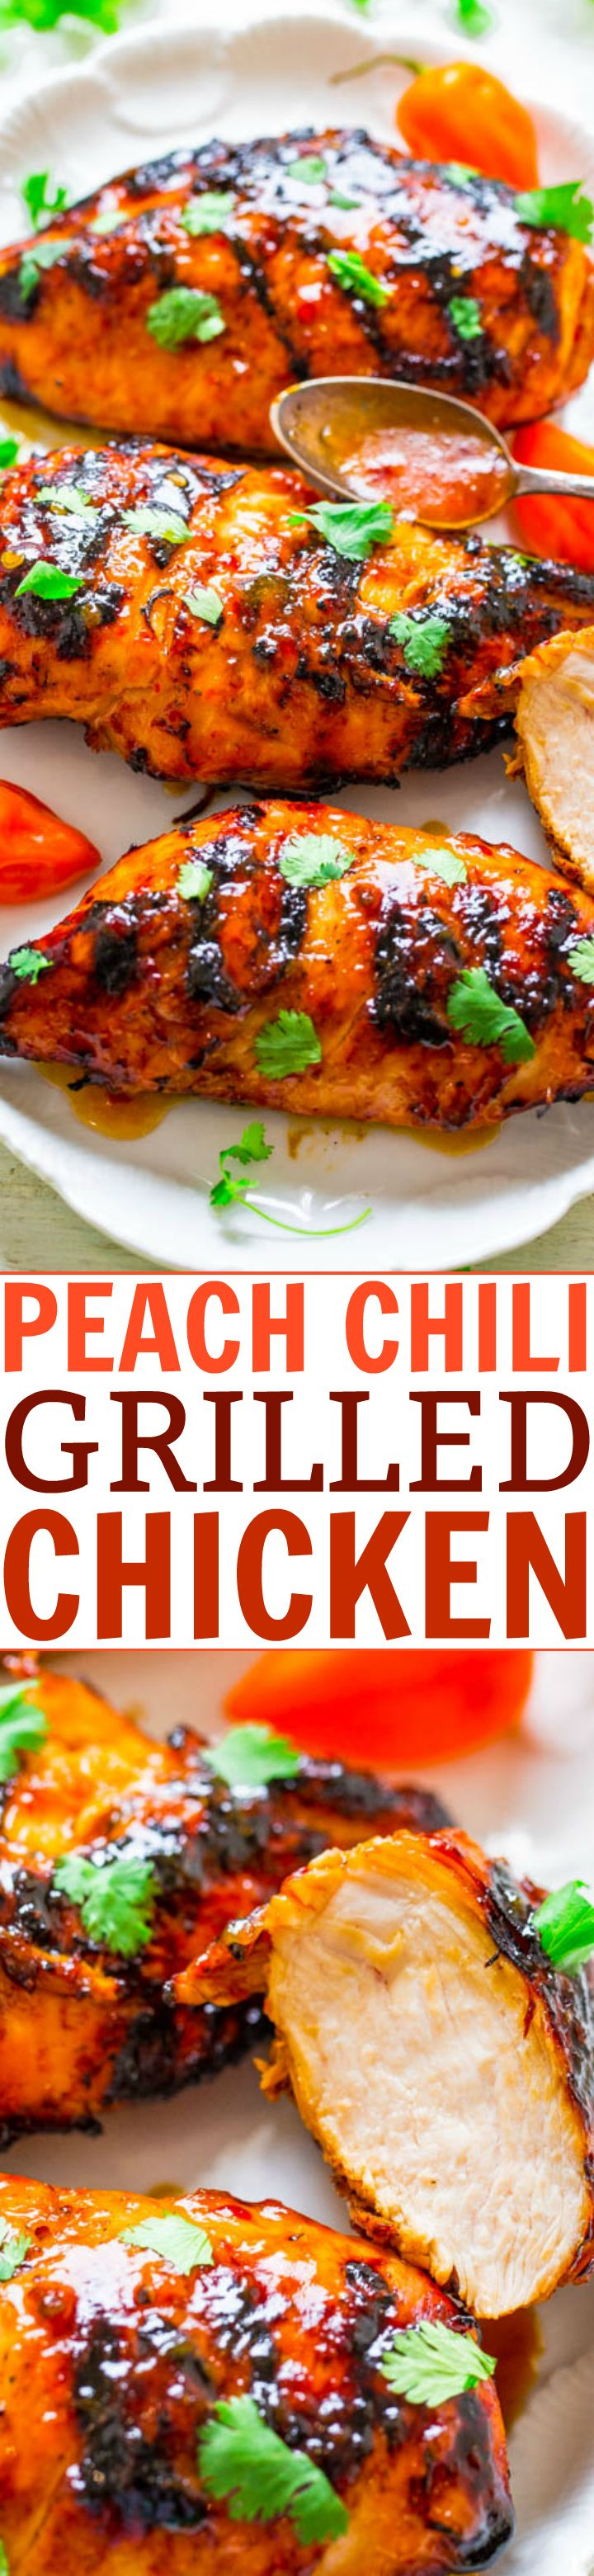 Grilled Chili Peach Chicken Averie Cooks Recipe Easy Summer Grilling Recipes Delicious Dinner Recipes Chicken